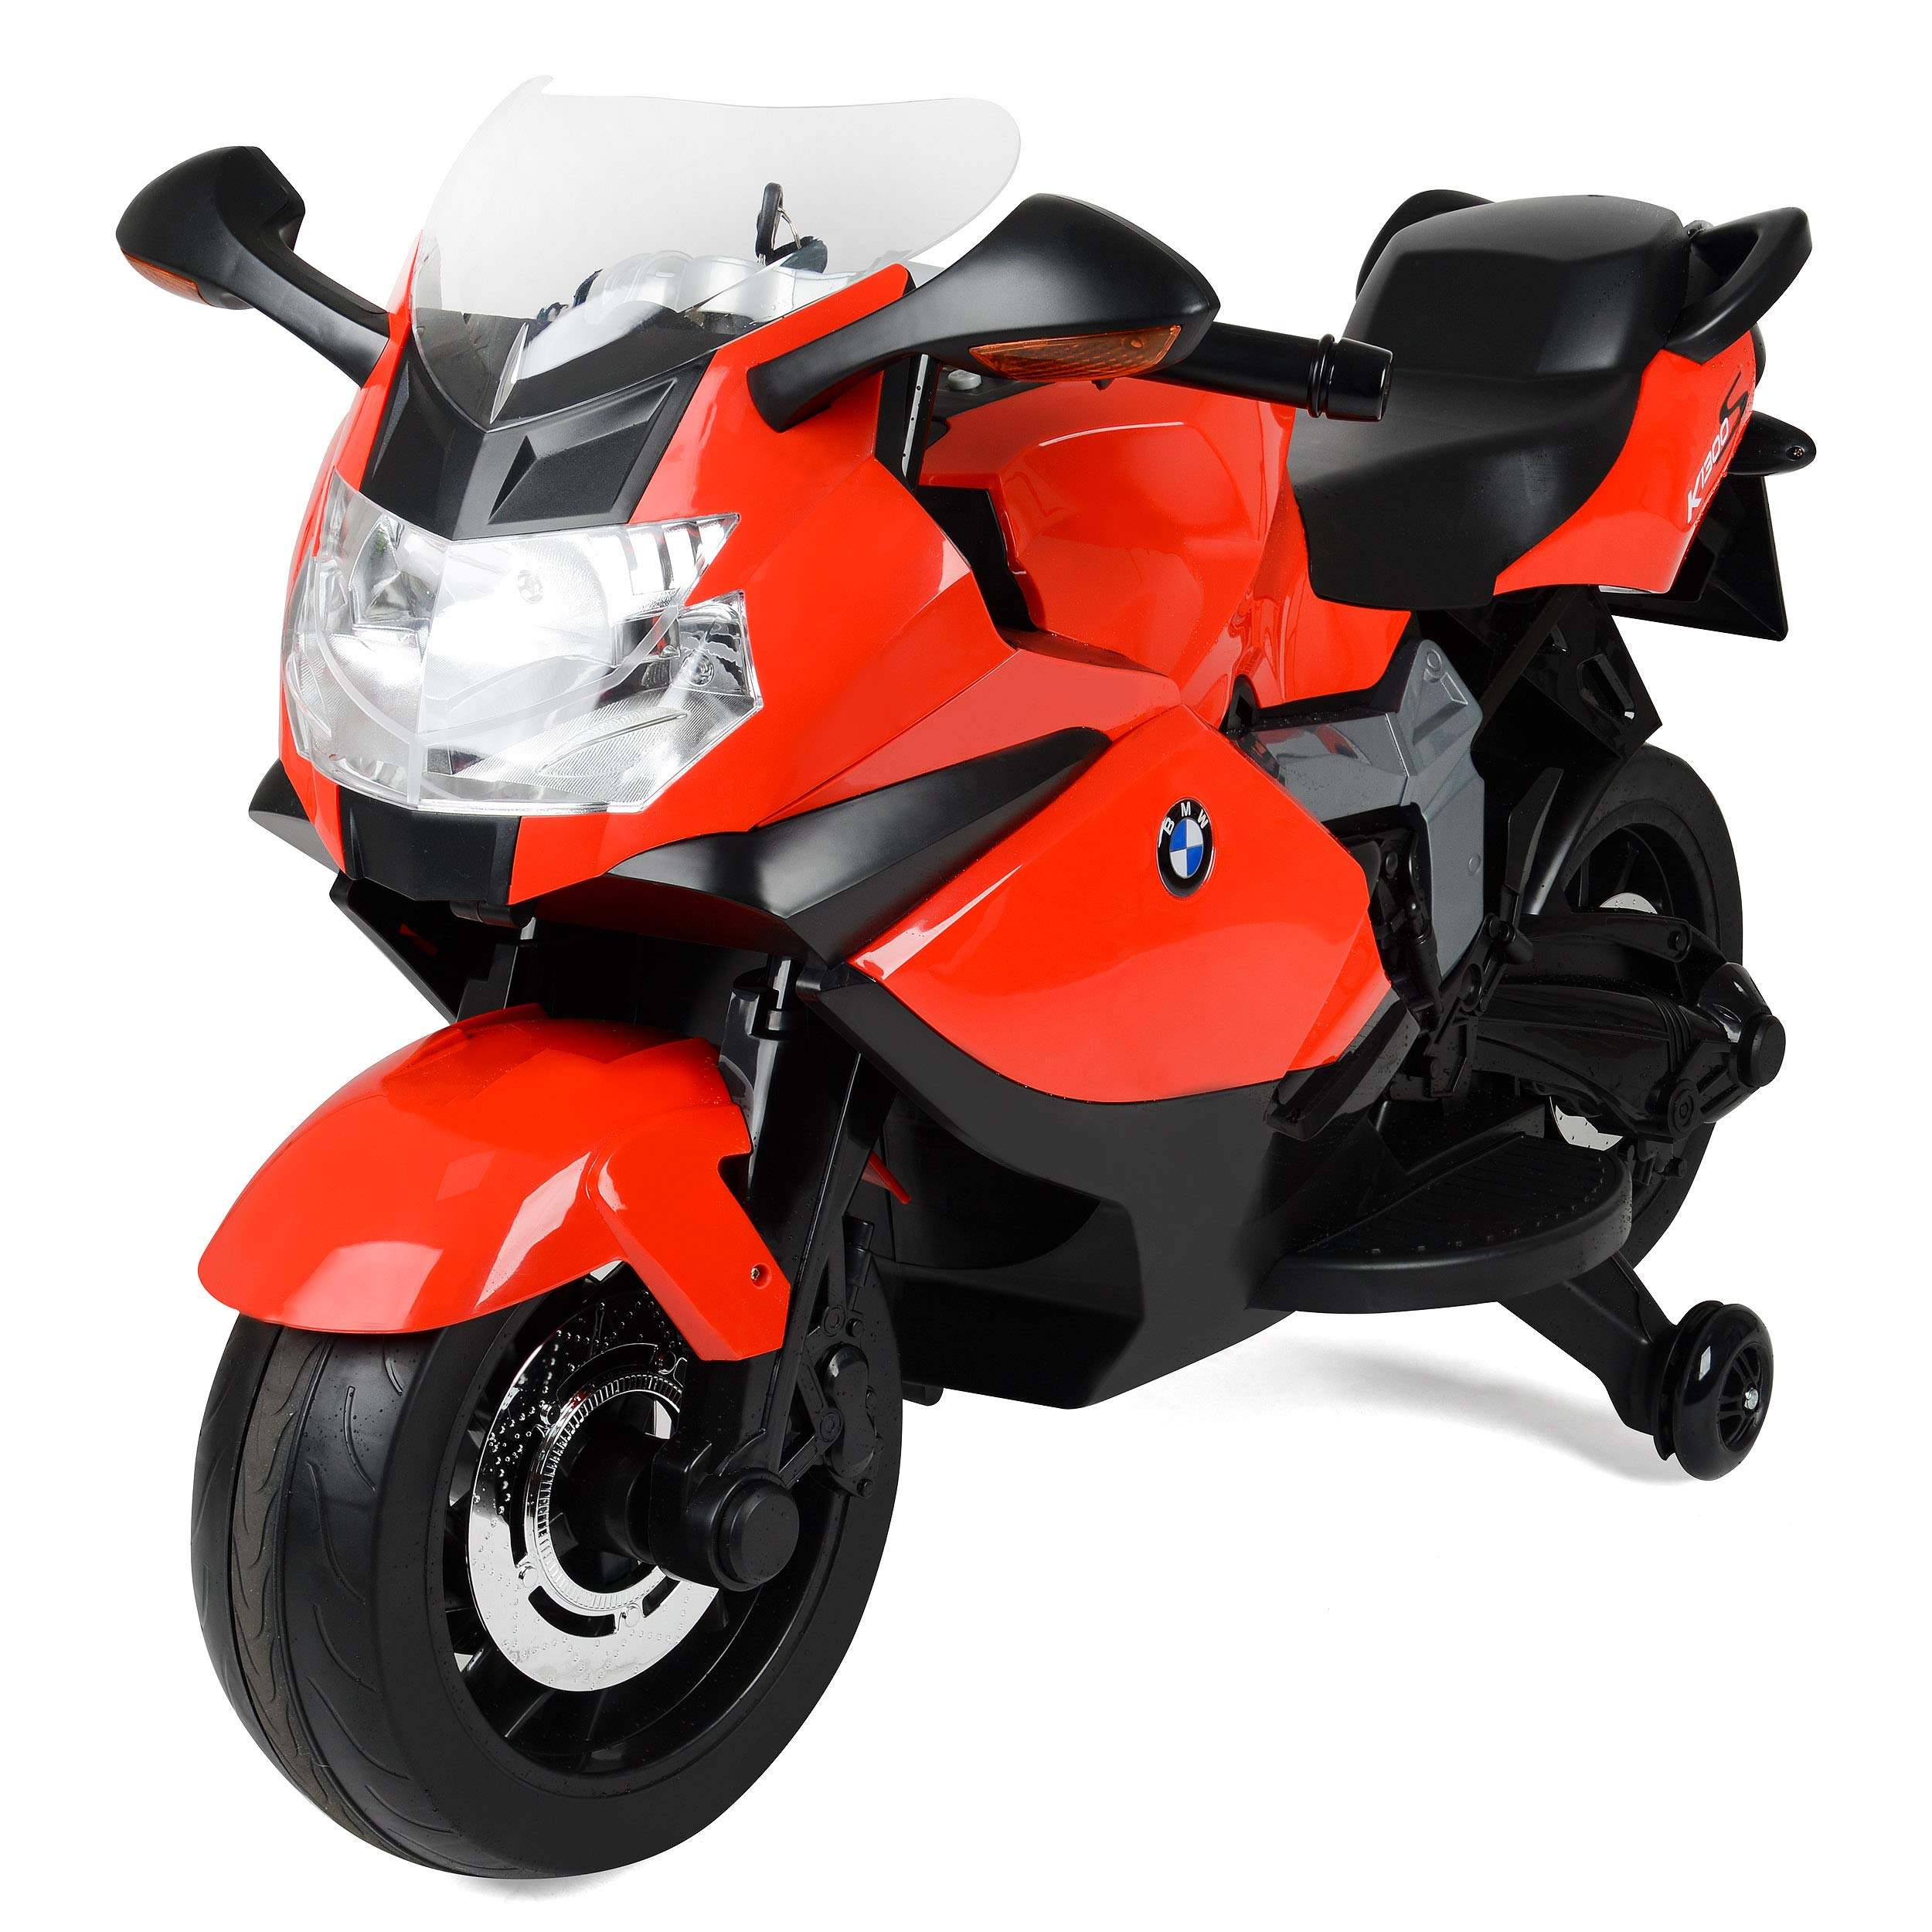 Xootz Bmw Official Licensed Electric Ride On Motorbike For Kids With Headlights And Sound Effects Red Buy Online In Indonesia At Desertcart Id Productid 51905979